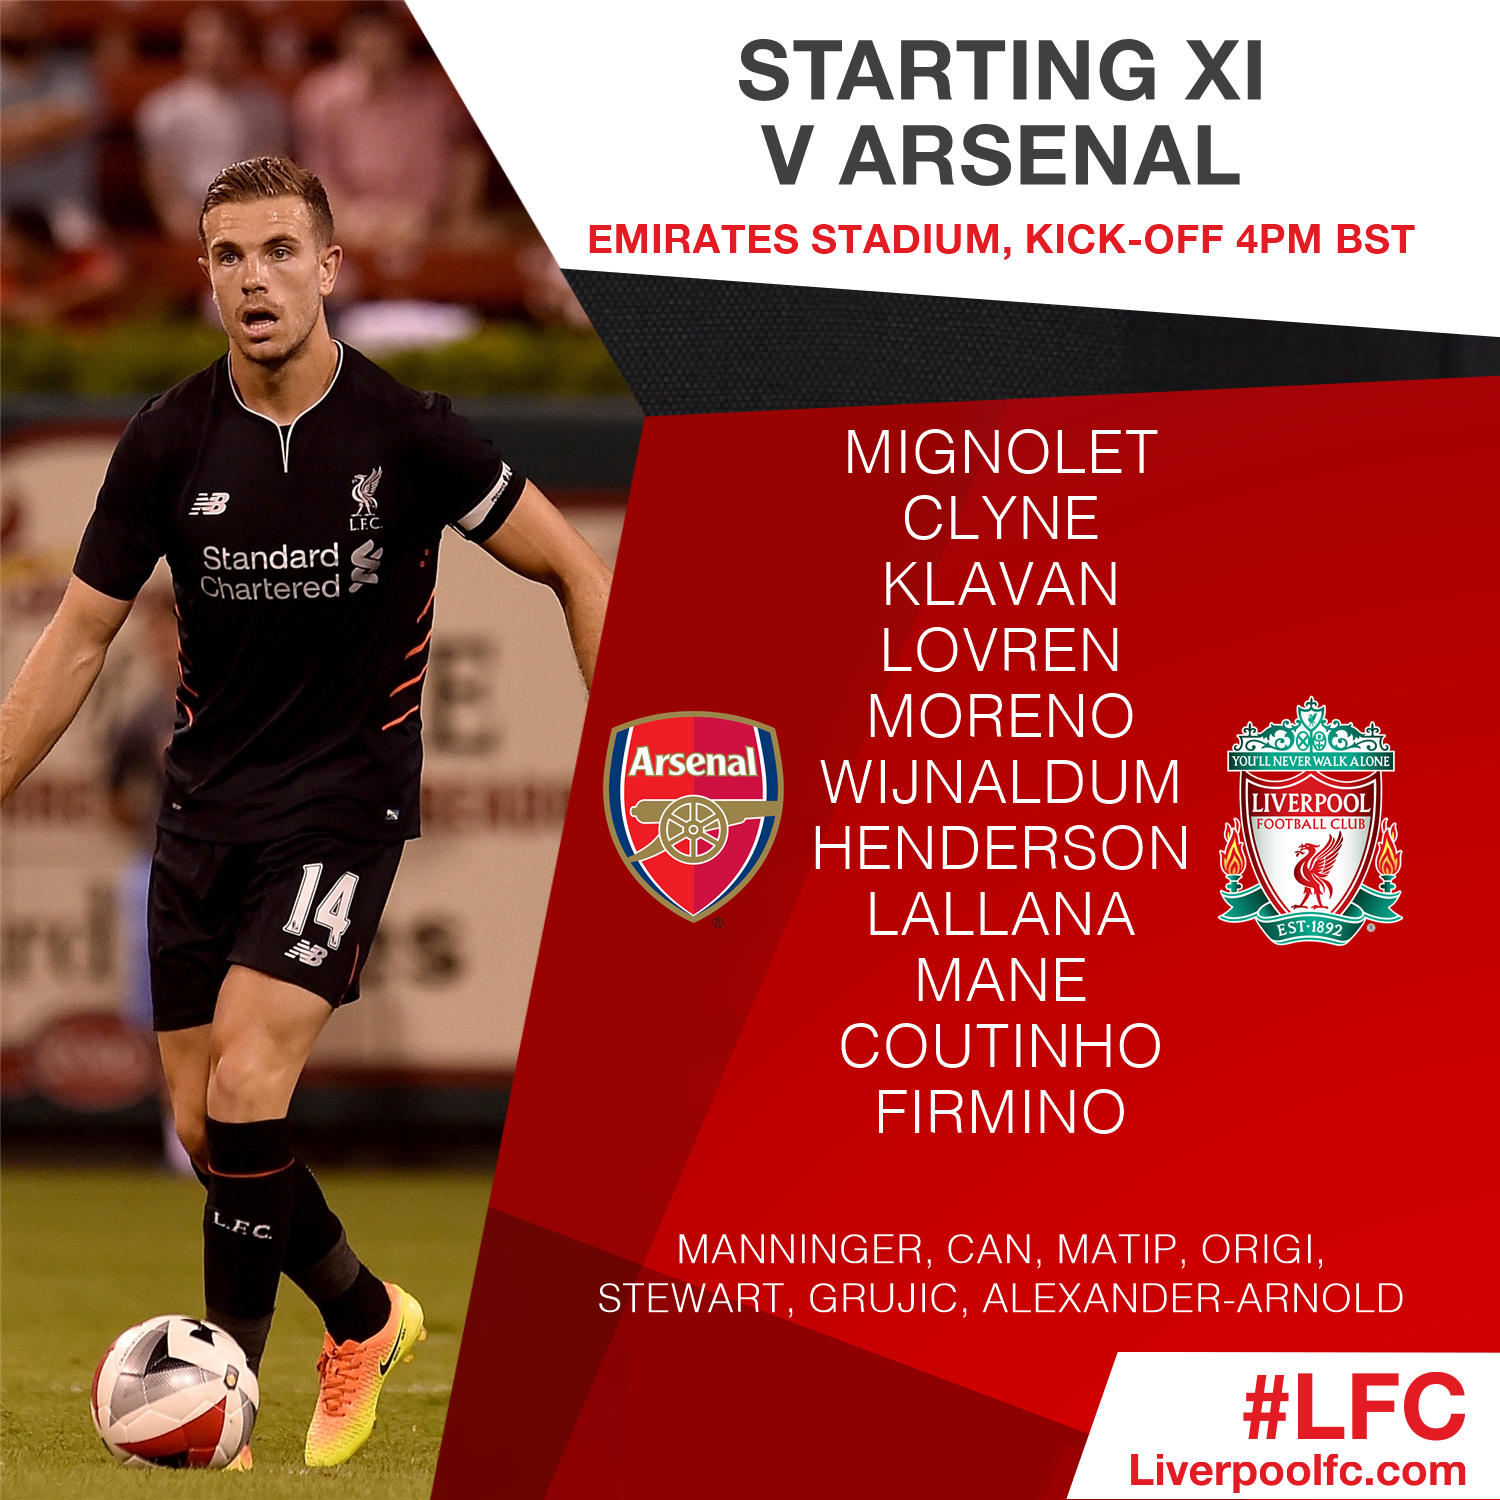 The #LFC squad for today's meeting with @Arsenal in full #AFCvLFC https://t.co/Nk9gsnPwuy